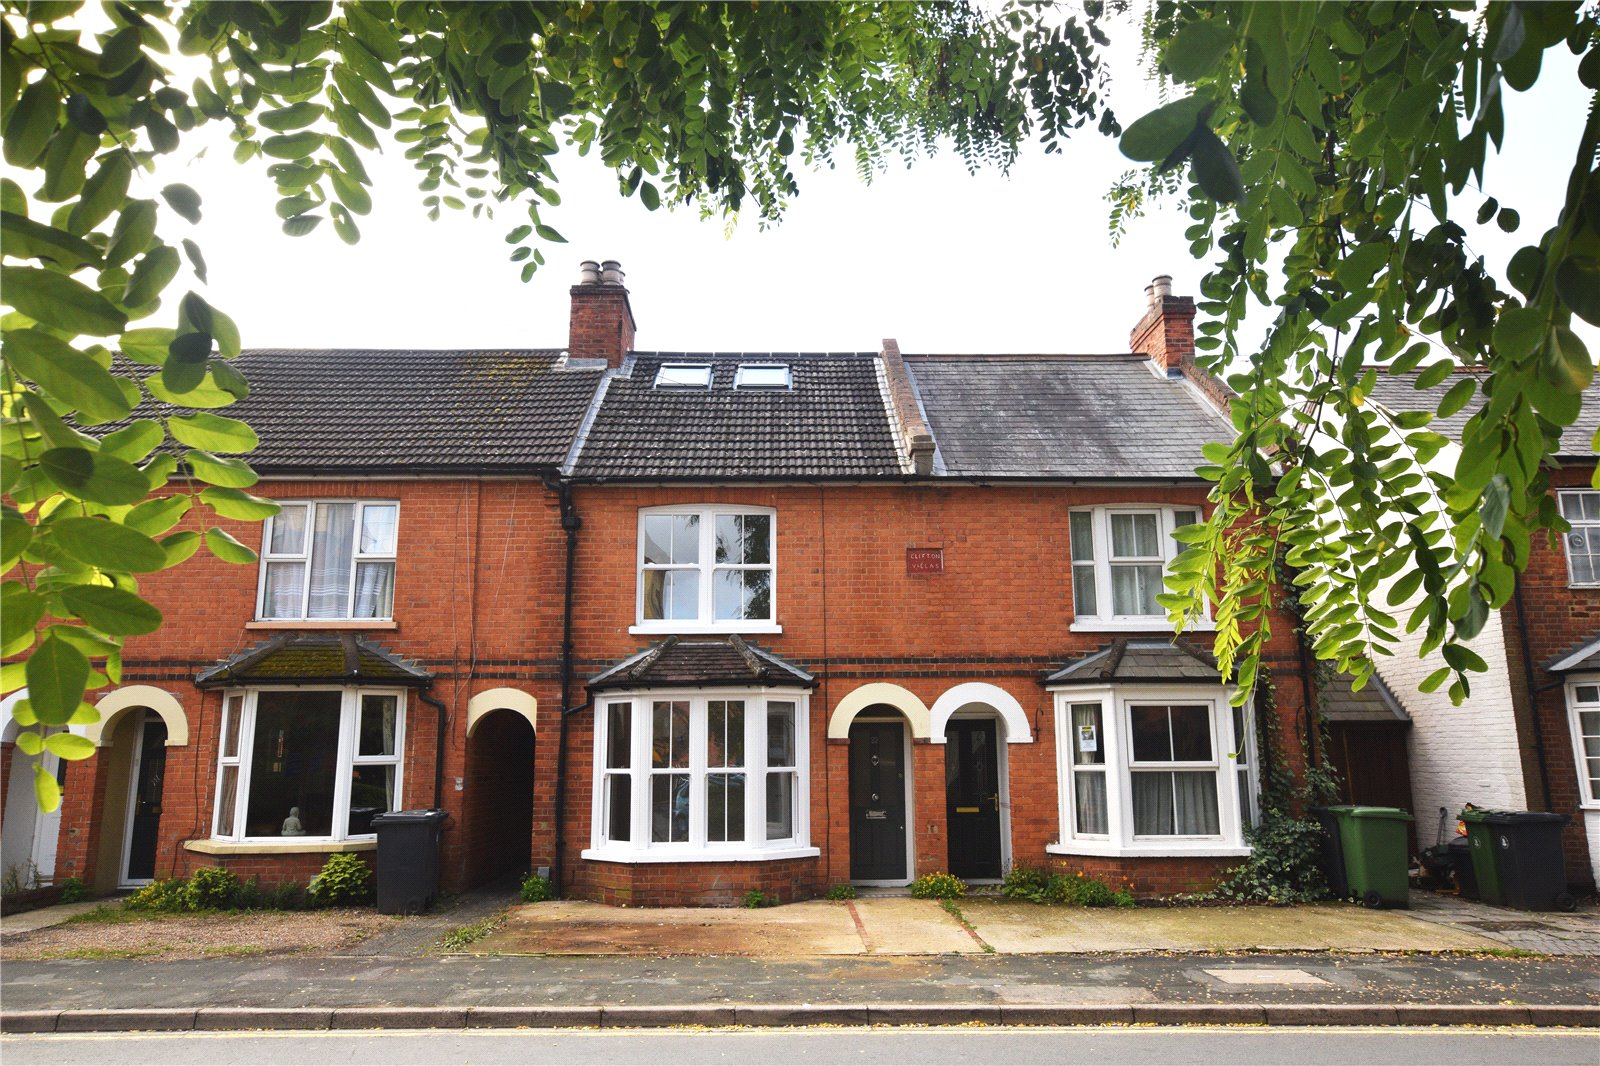 4 Bedrooms Terraced House for sale in Portesbery Road, Camberley, Surrey, GU15